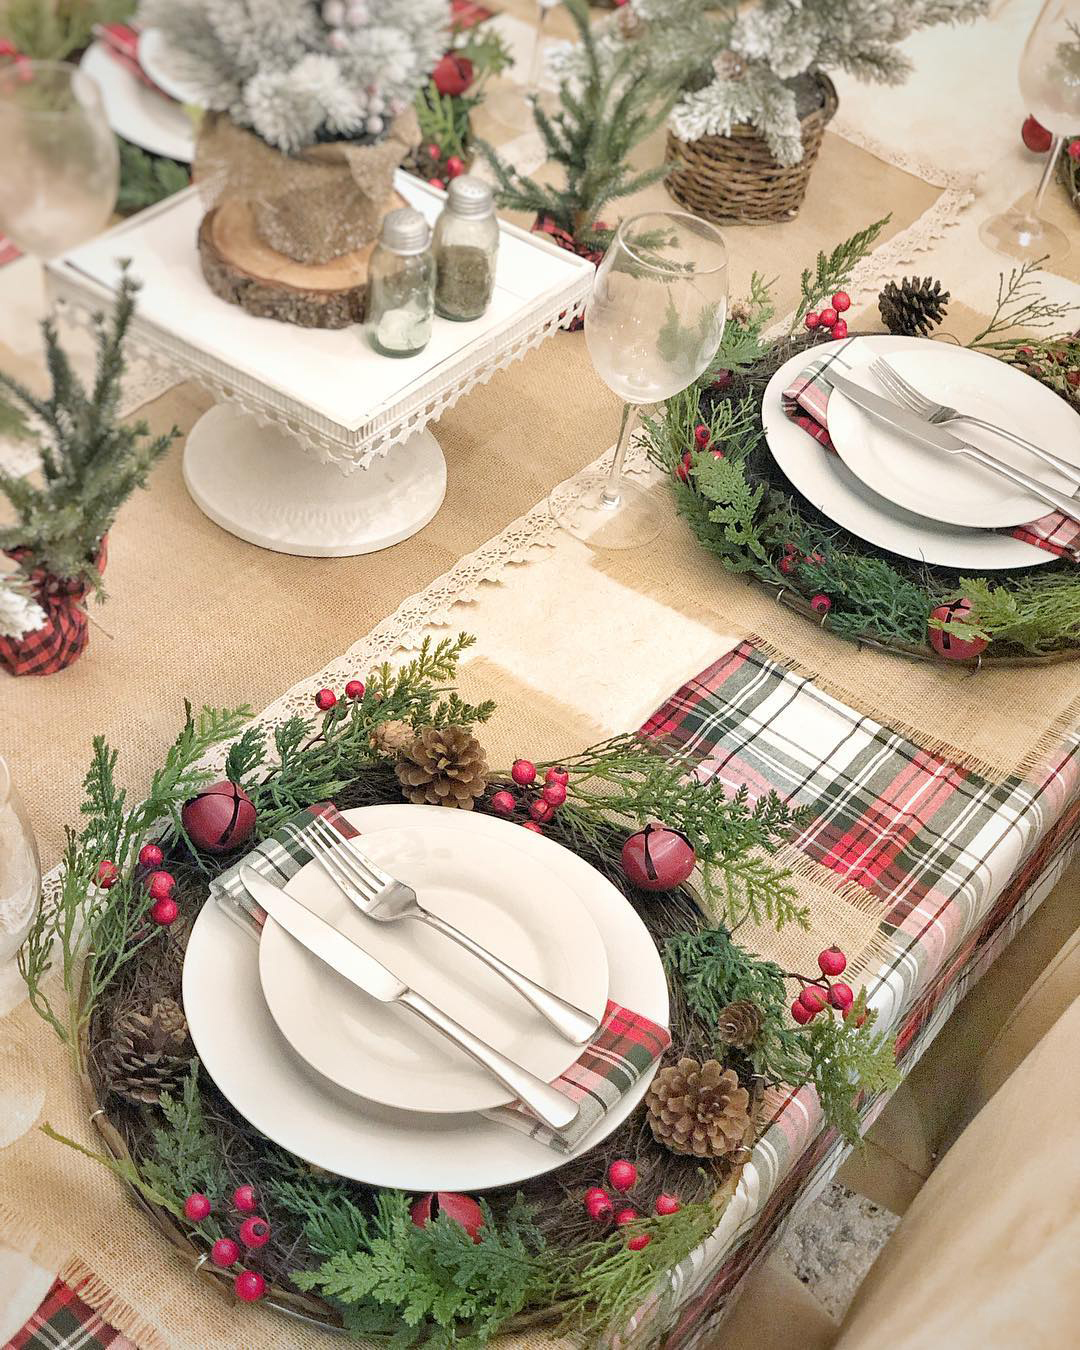 Farmhouse Christmas Table Setting | CNS Designs & Decor